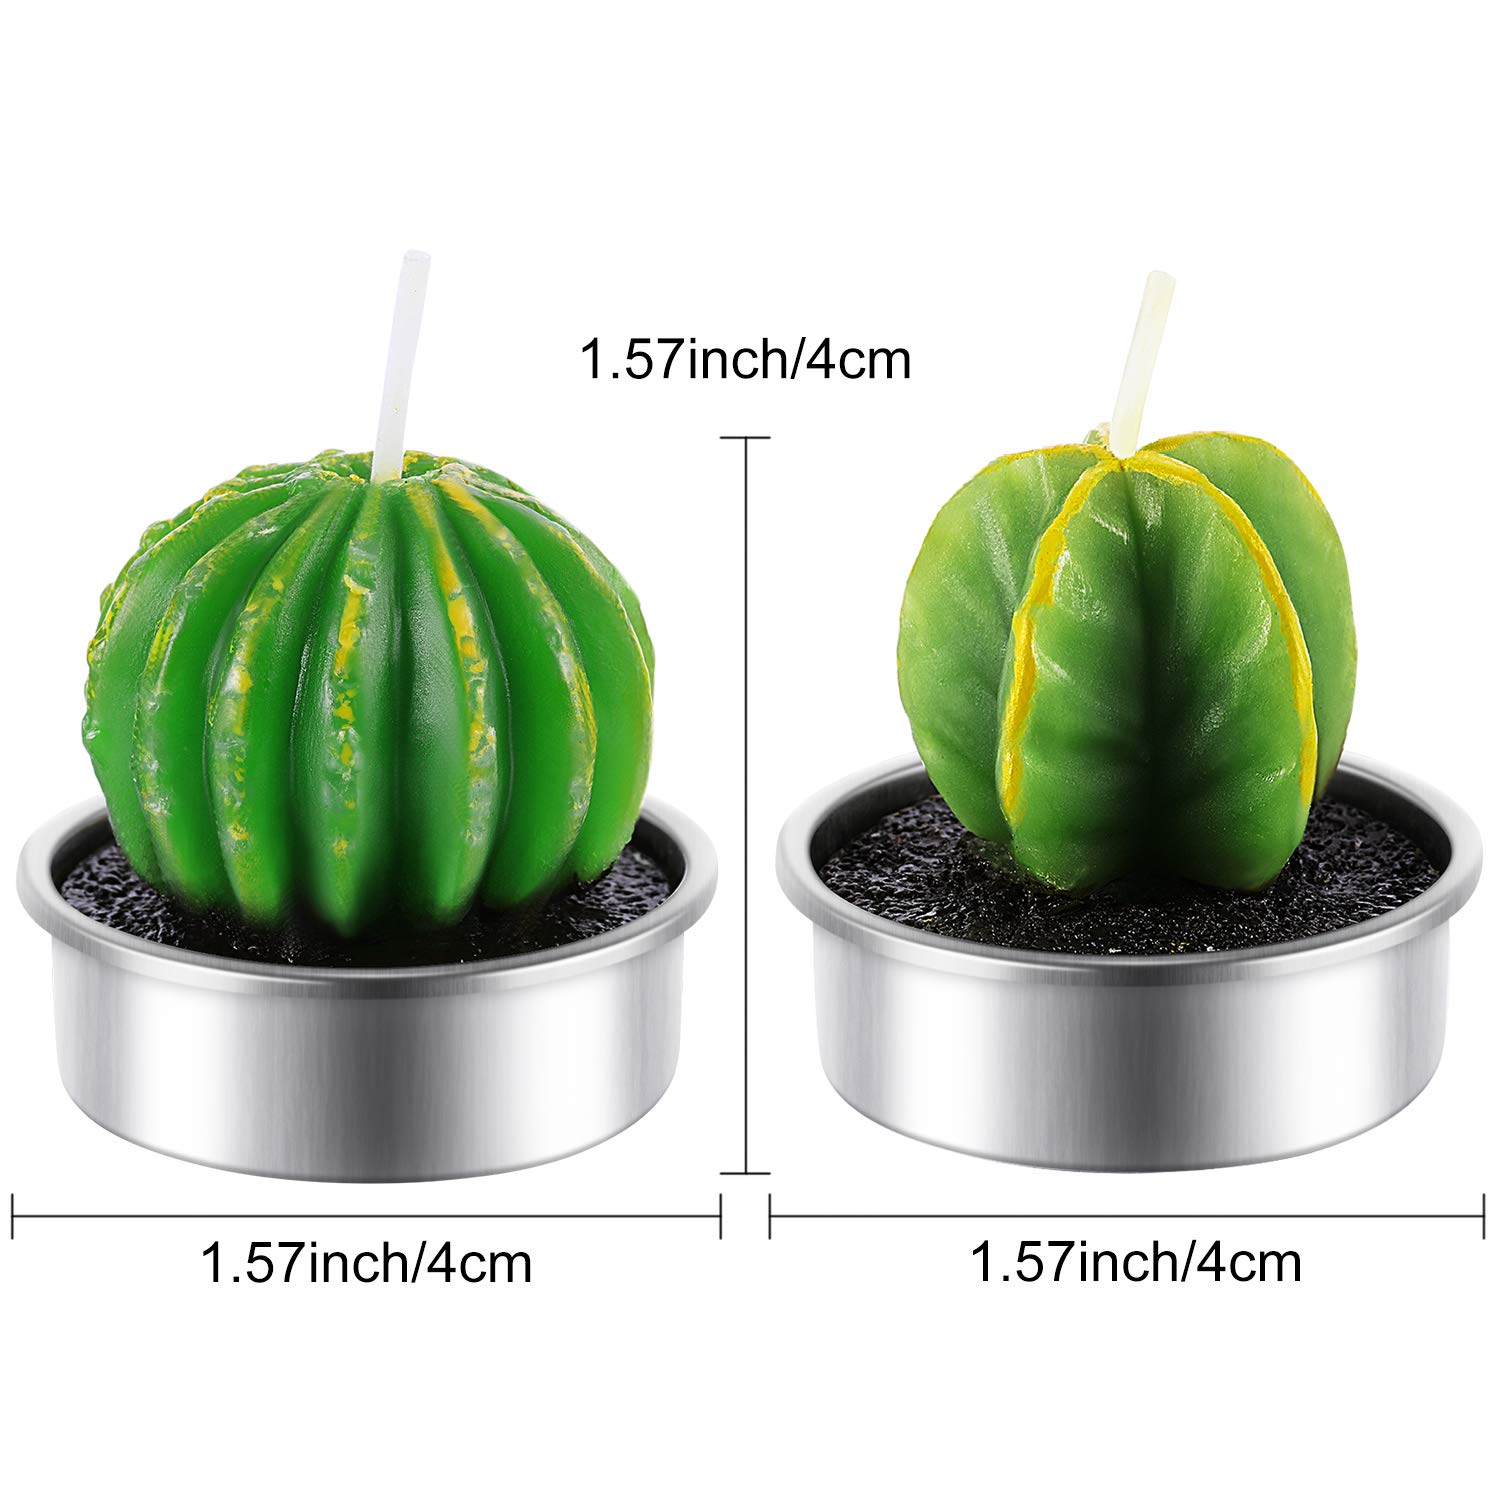 Tatuo 12 Pieces Cactus Candles Succulent Cactus Rose Tealight Handmade Candles for Teatime Spa Home Party Wedding Decoration Gifts by Tatuo (Image #4)